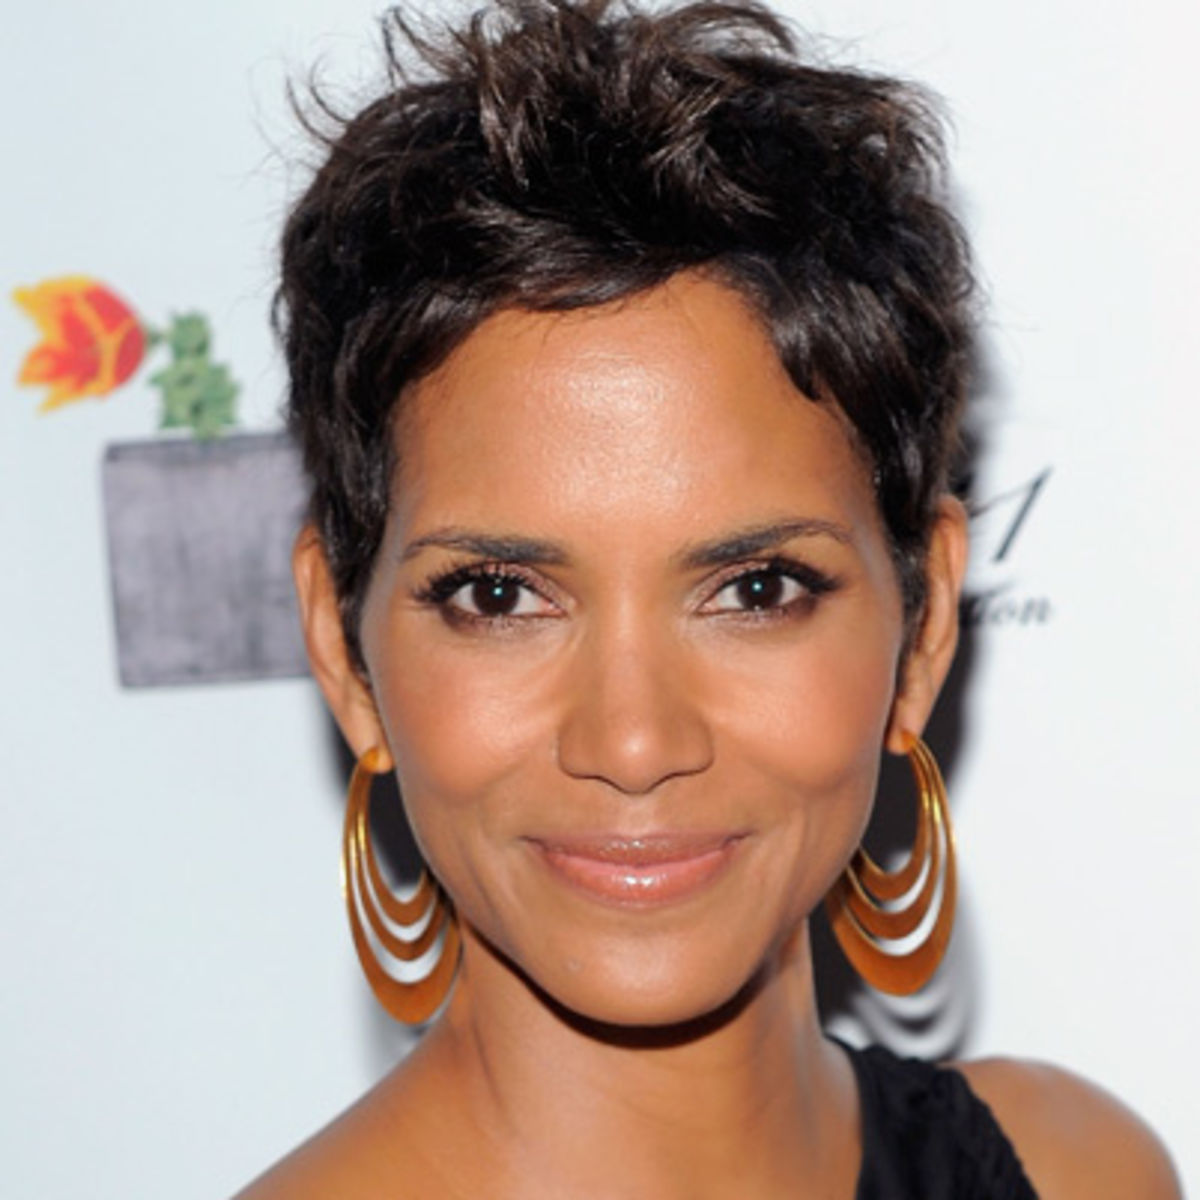 High Resolution Wallpaper | Halle Berry 1200x1200 px